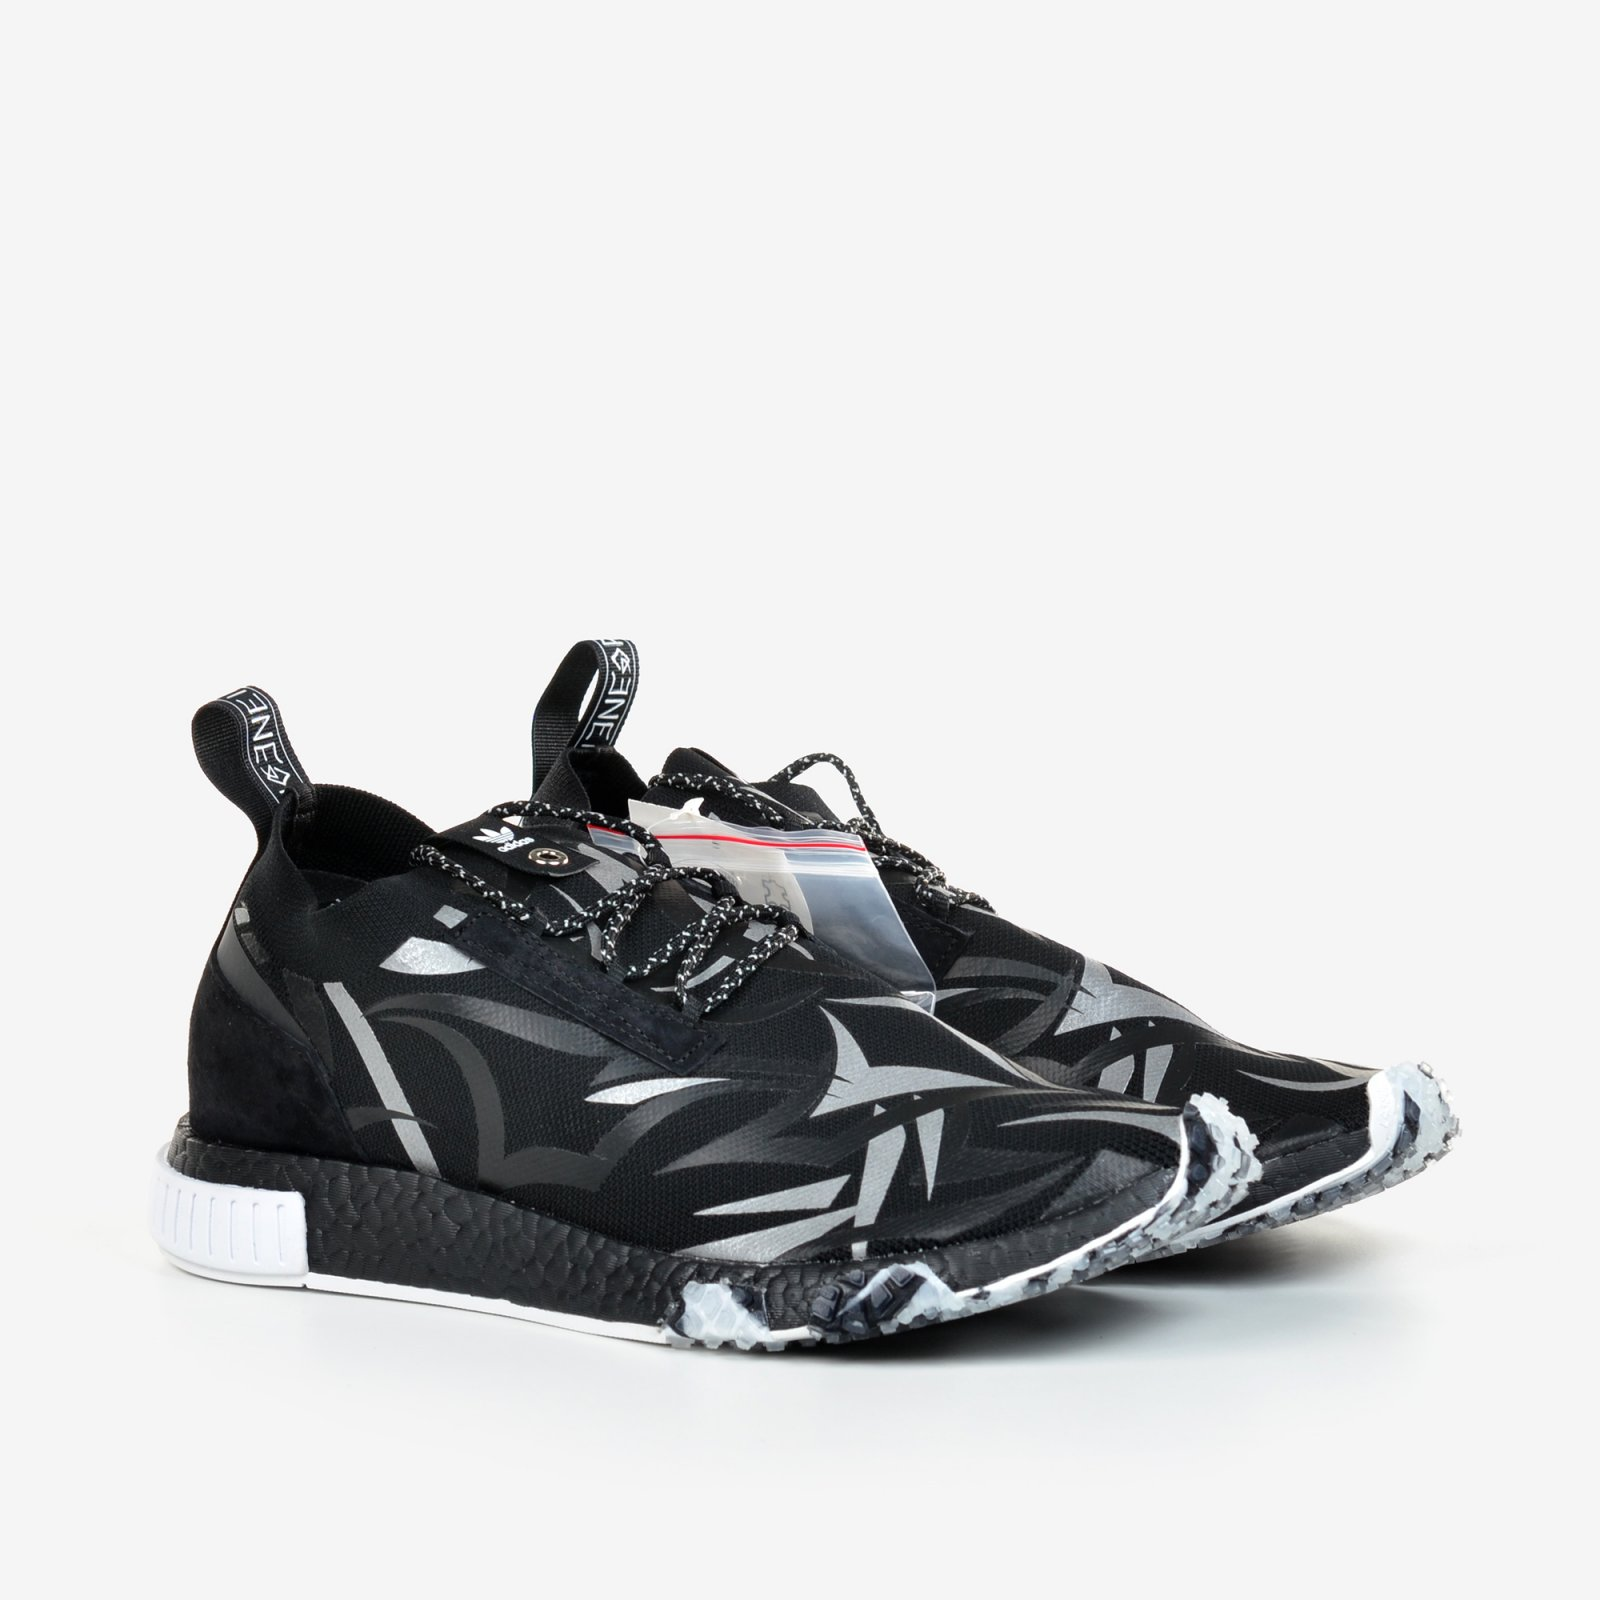 854b81670 Details about Adidas Consortium X Juice NMD Racer Alienegra White Black  with Shoe Bag DB1777